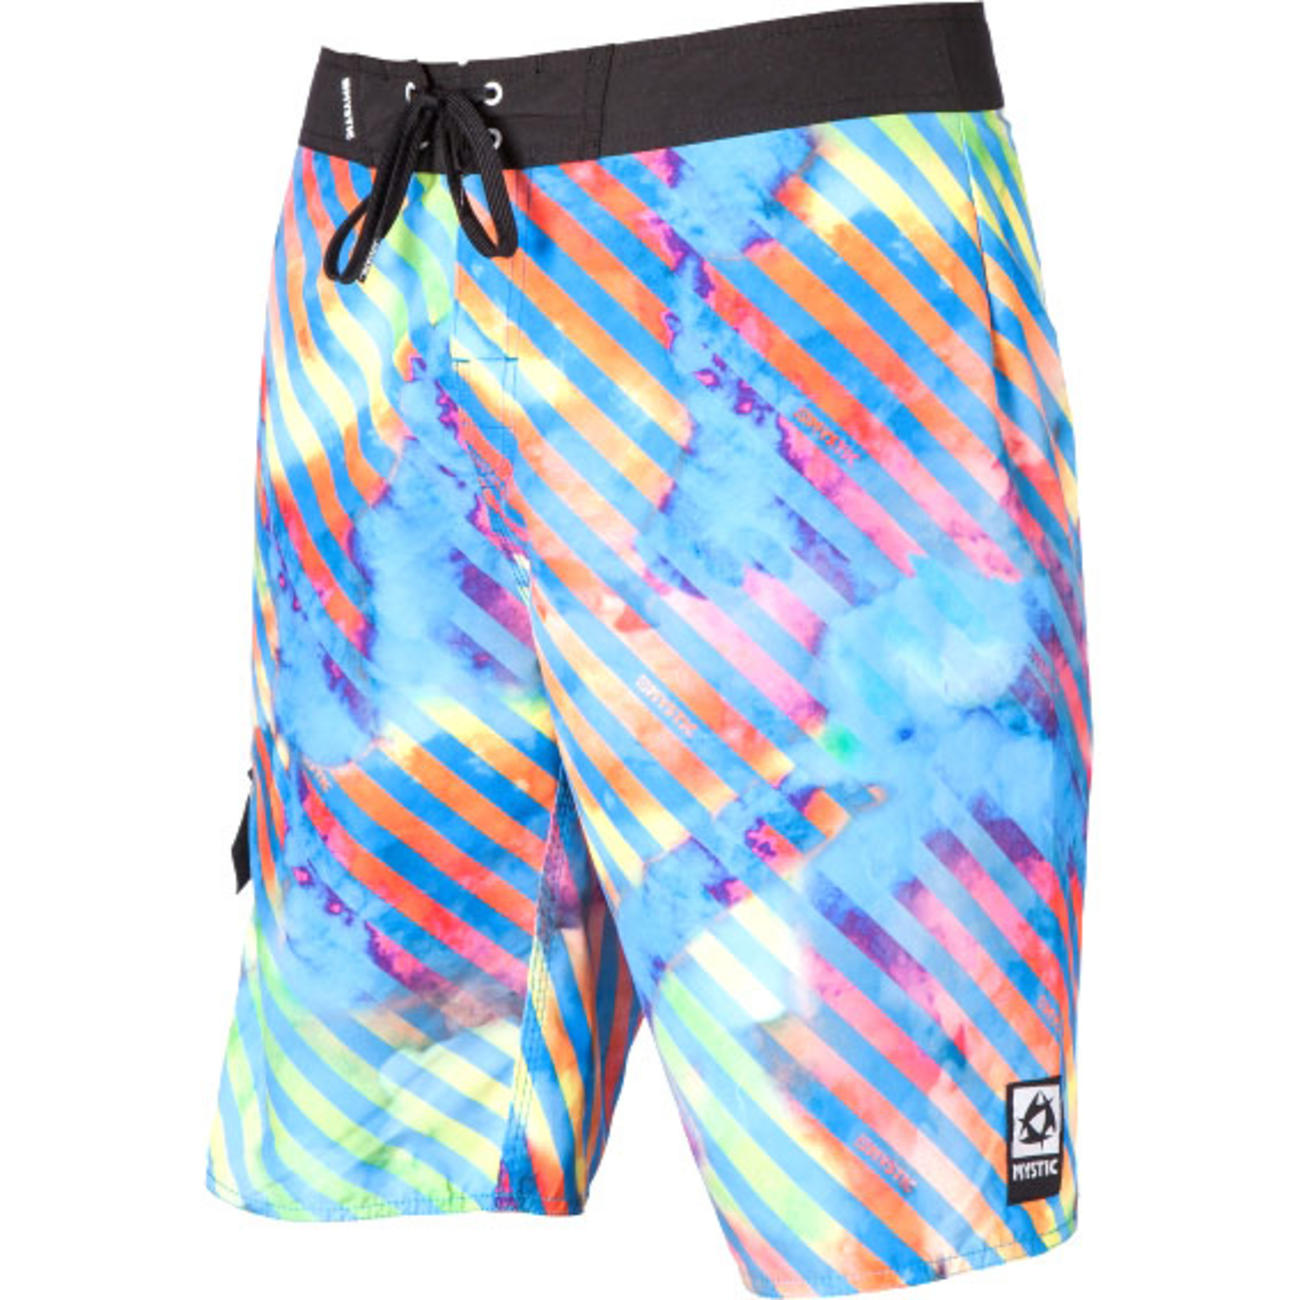 Powder Boardshort (21,5'')